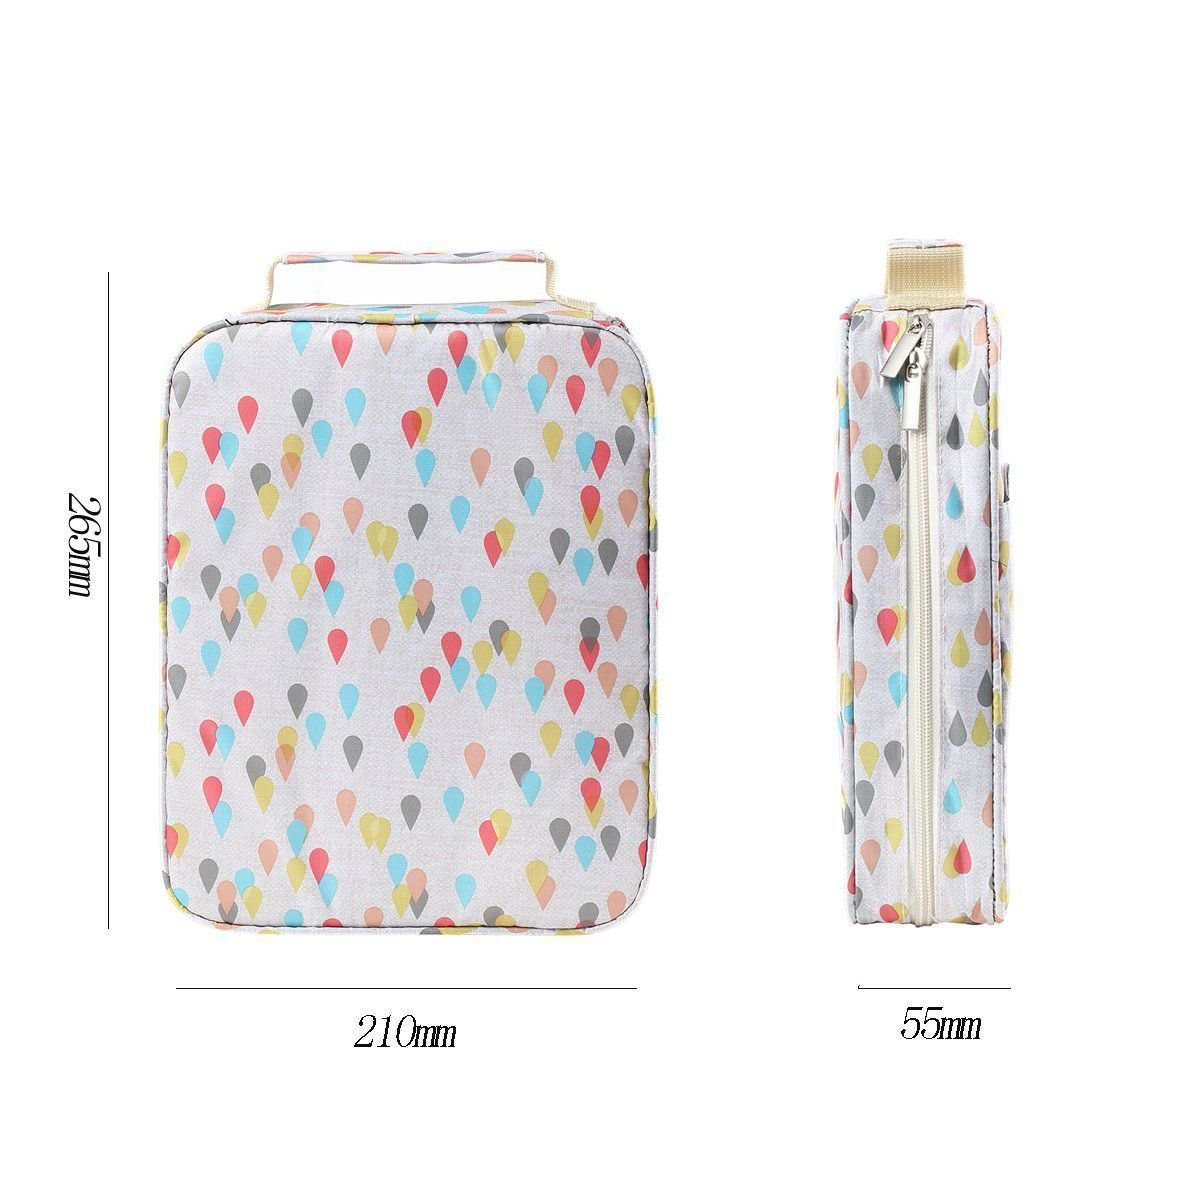 Nrpfell 150 Slots Colored Pencils Universal Pencil Bag Pen Case School Stationery PencilCase Drawing Painting Storage Pouch Pencil Box by Nrpfell (Image #7)